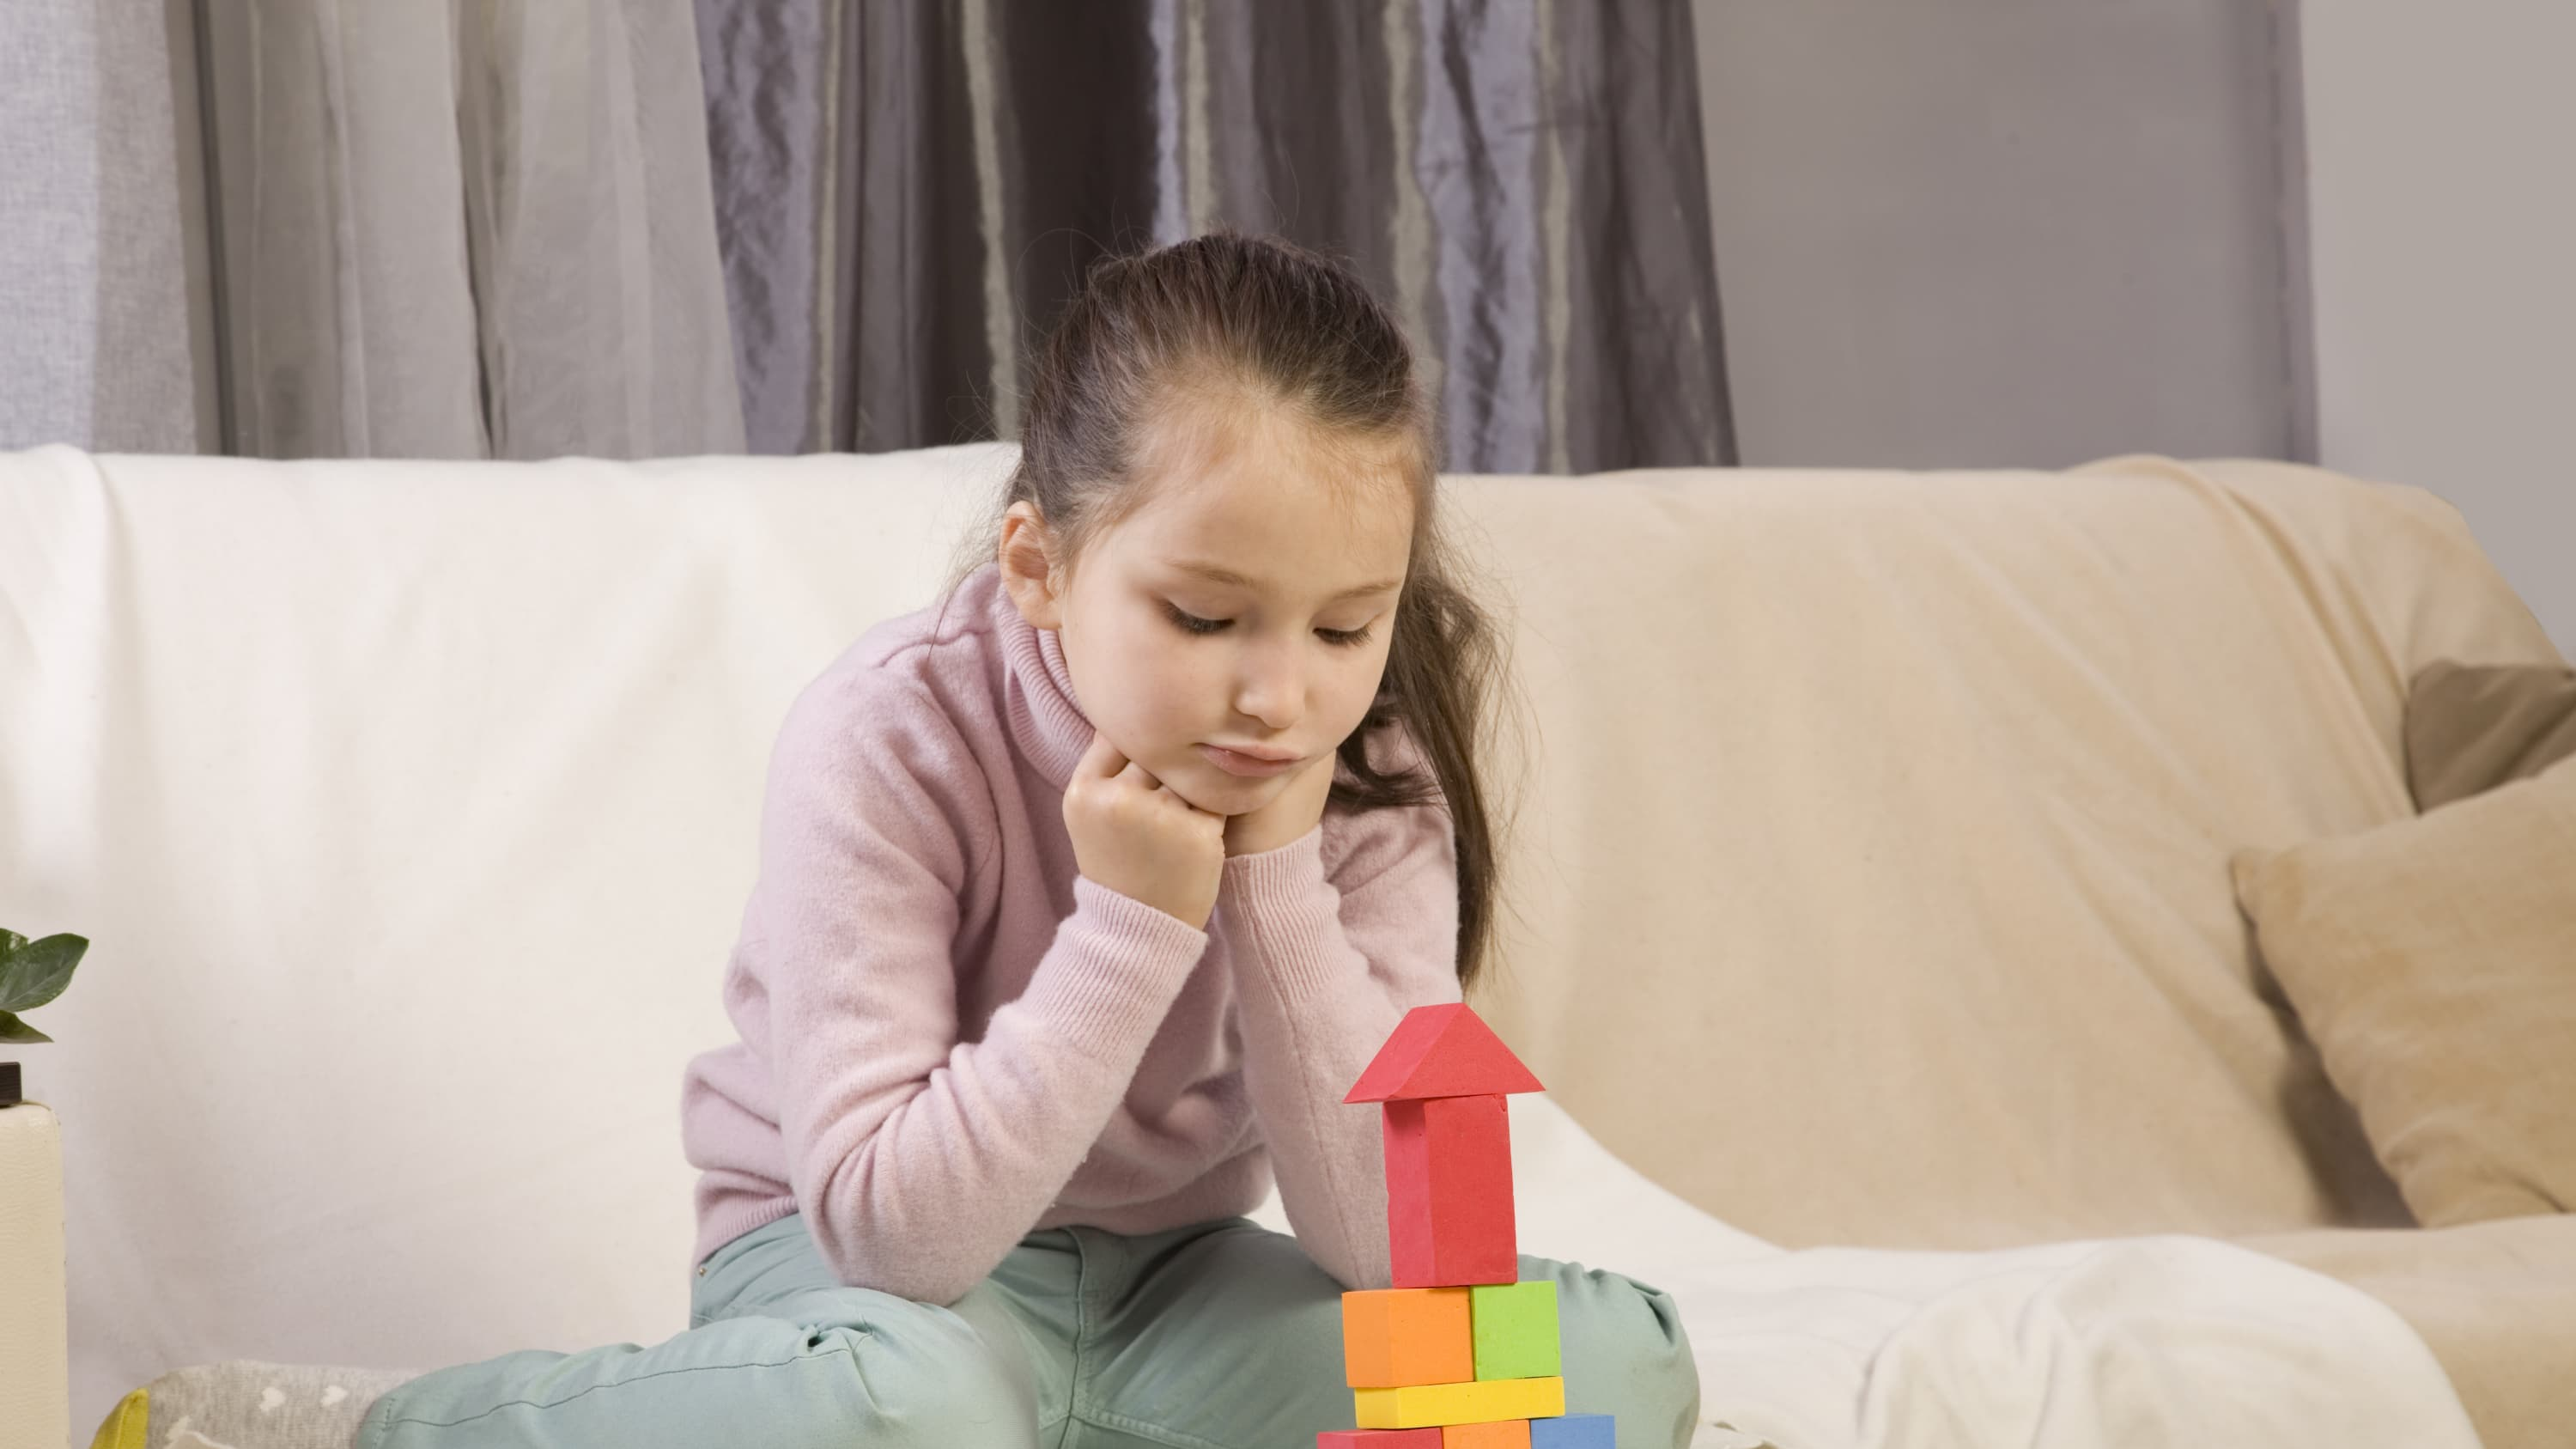 A child playing with blocks may have obsessive-compulsive disorder.